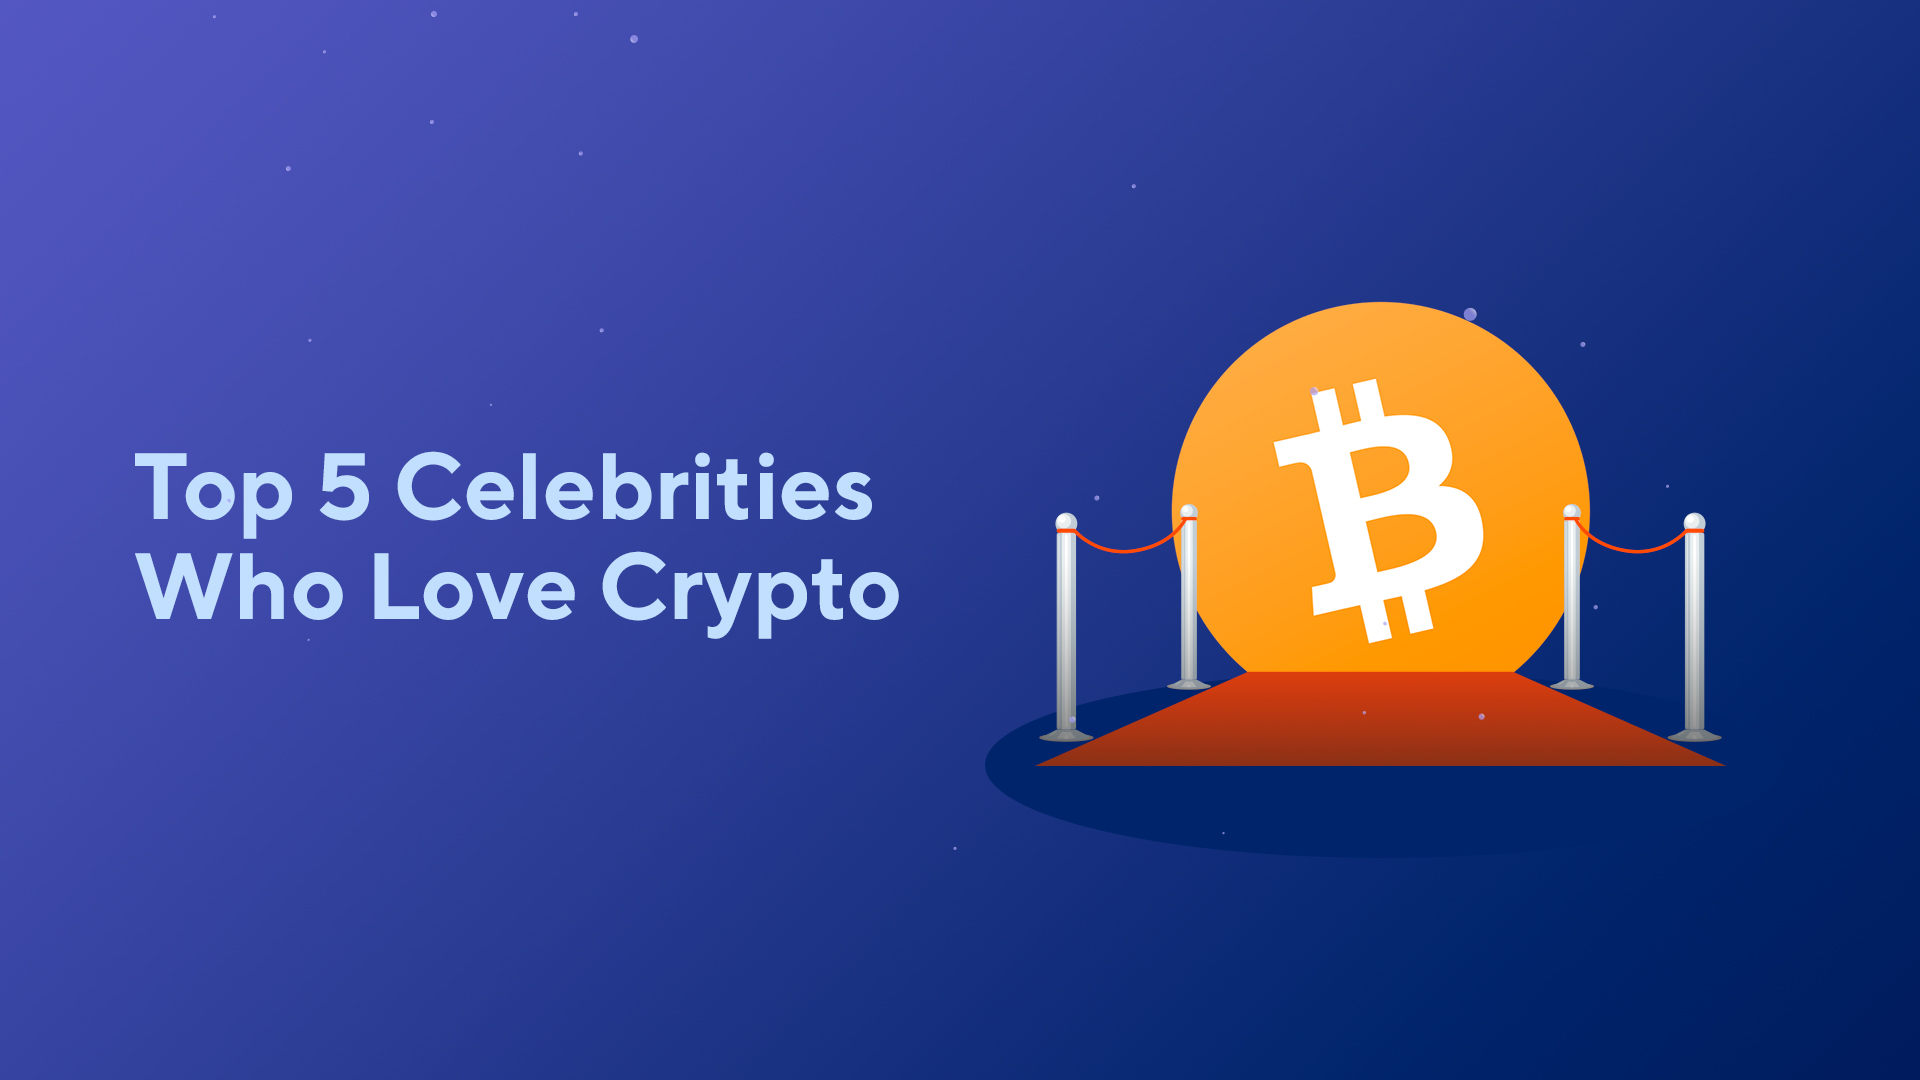 Top 5 Celebrities Who Love Cryptocurrency